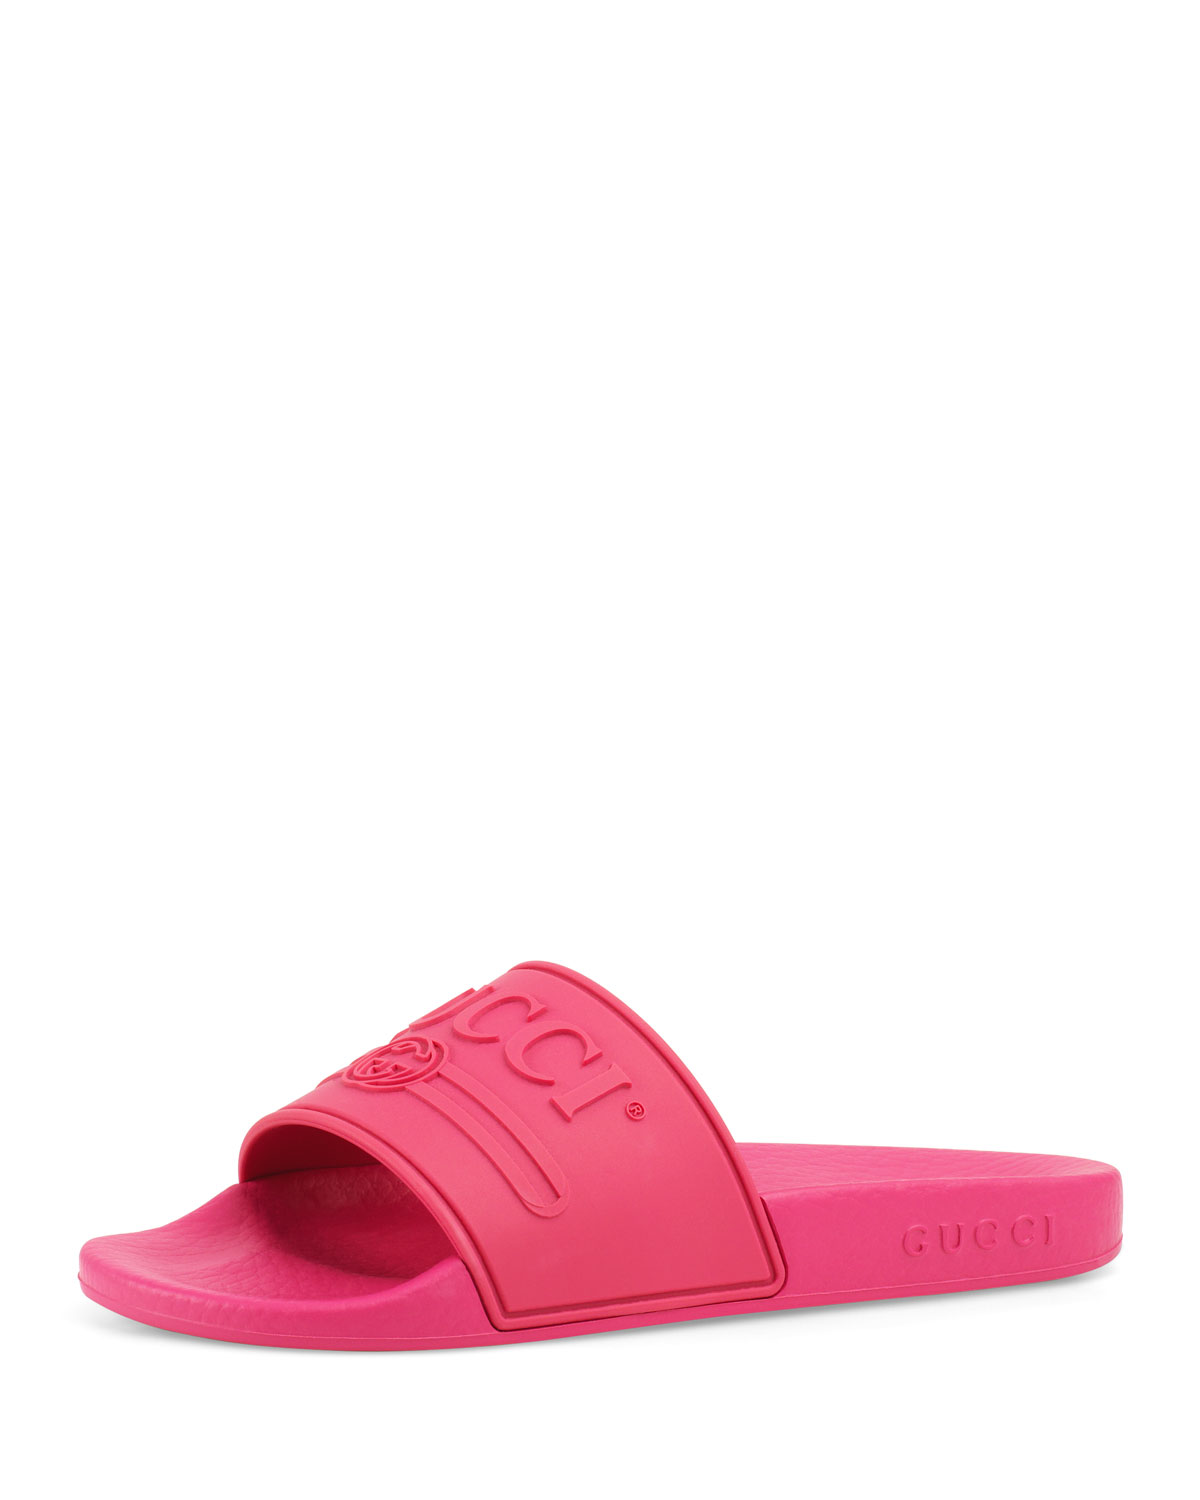 dda9f3a60de Gucci Pursuit Gucci Rubber Slide Sandals